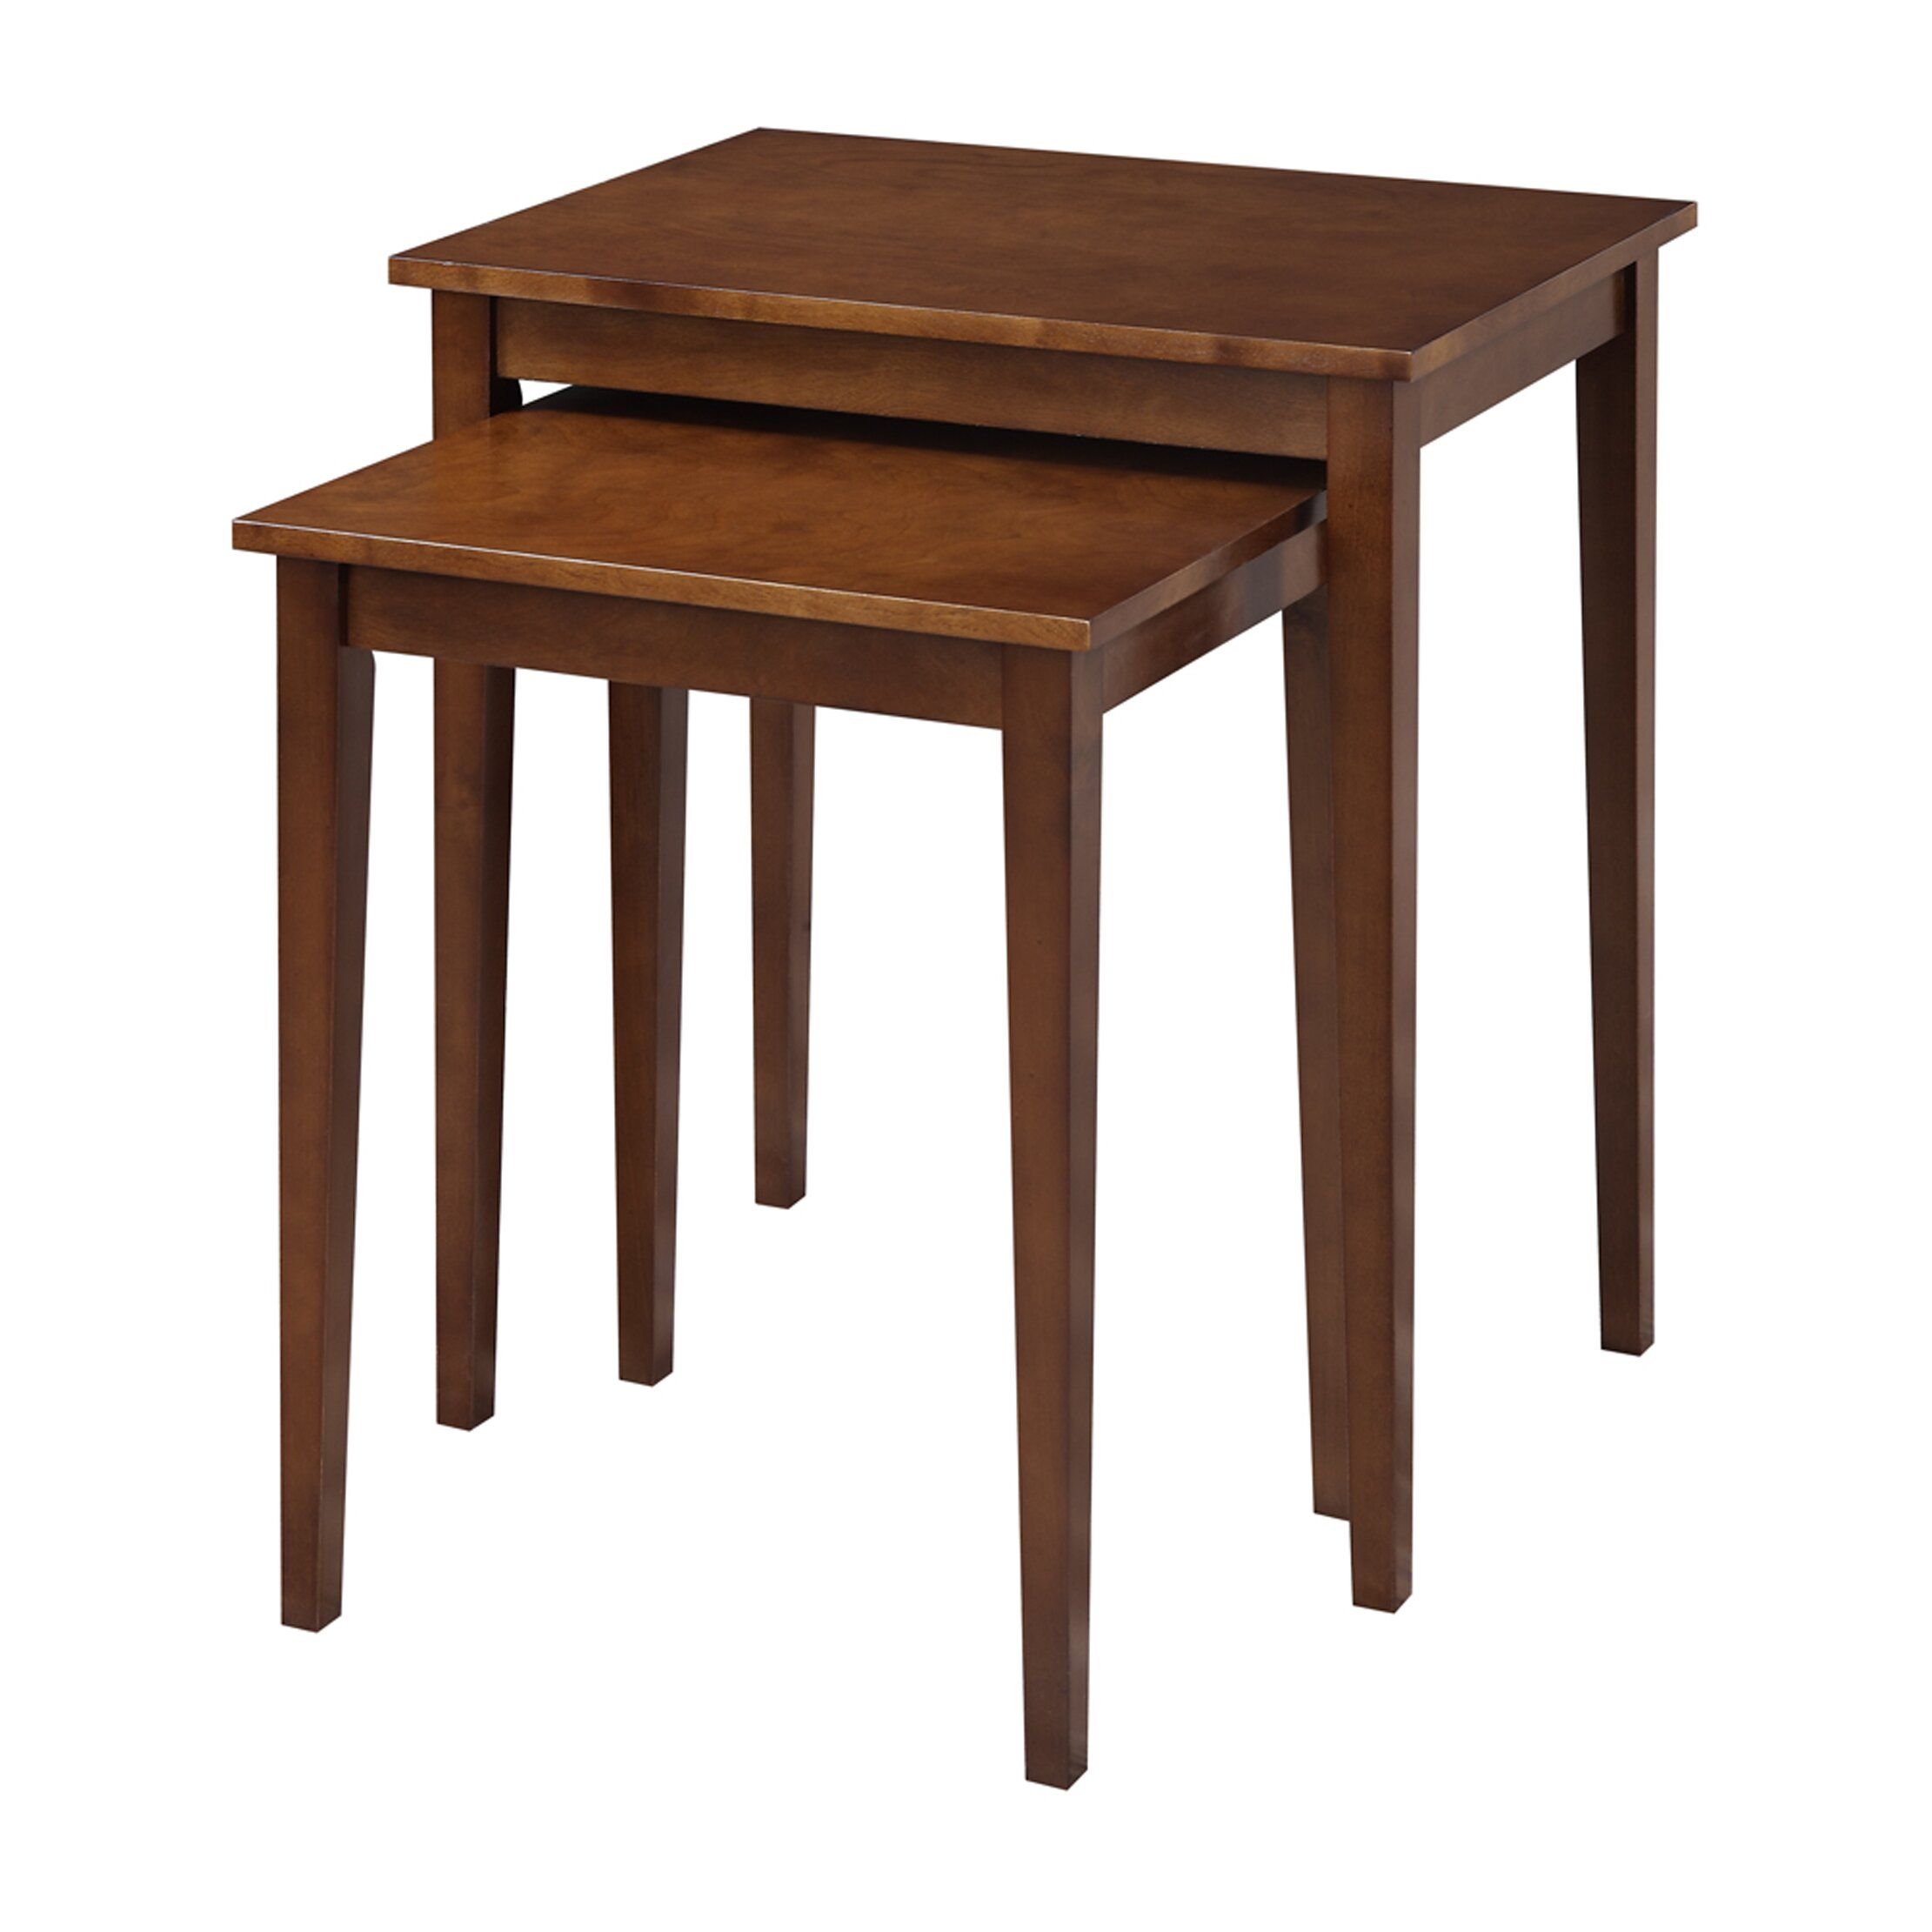 Convenience Concepts American Heritage 2 Piece Nesting Tables & Reviews | Wayfair